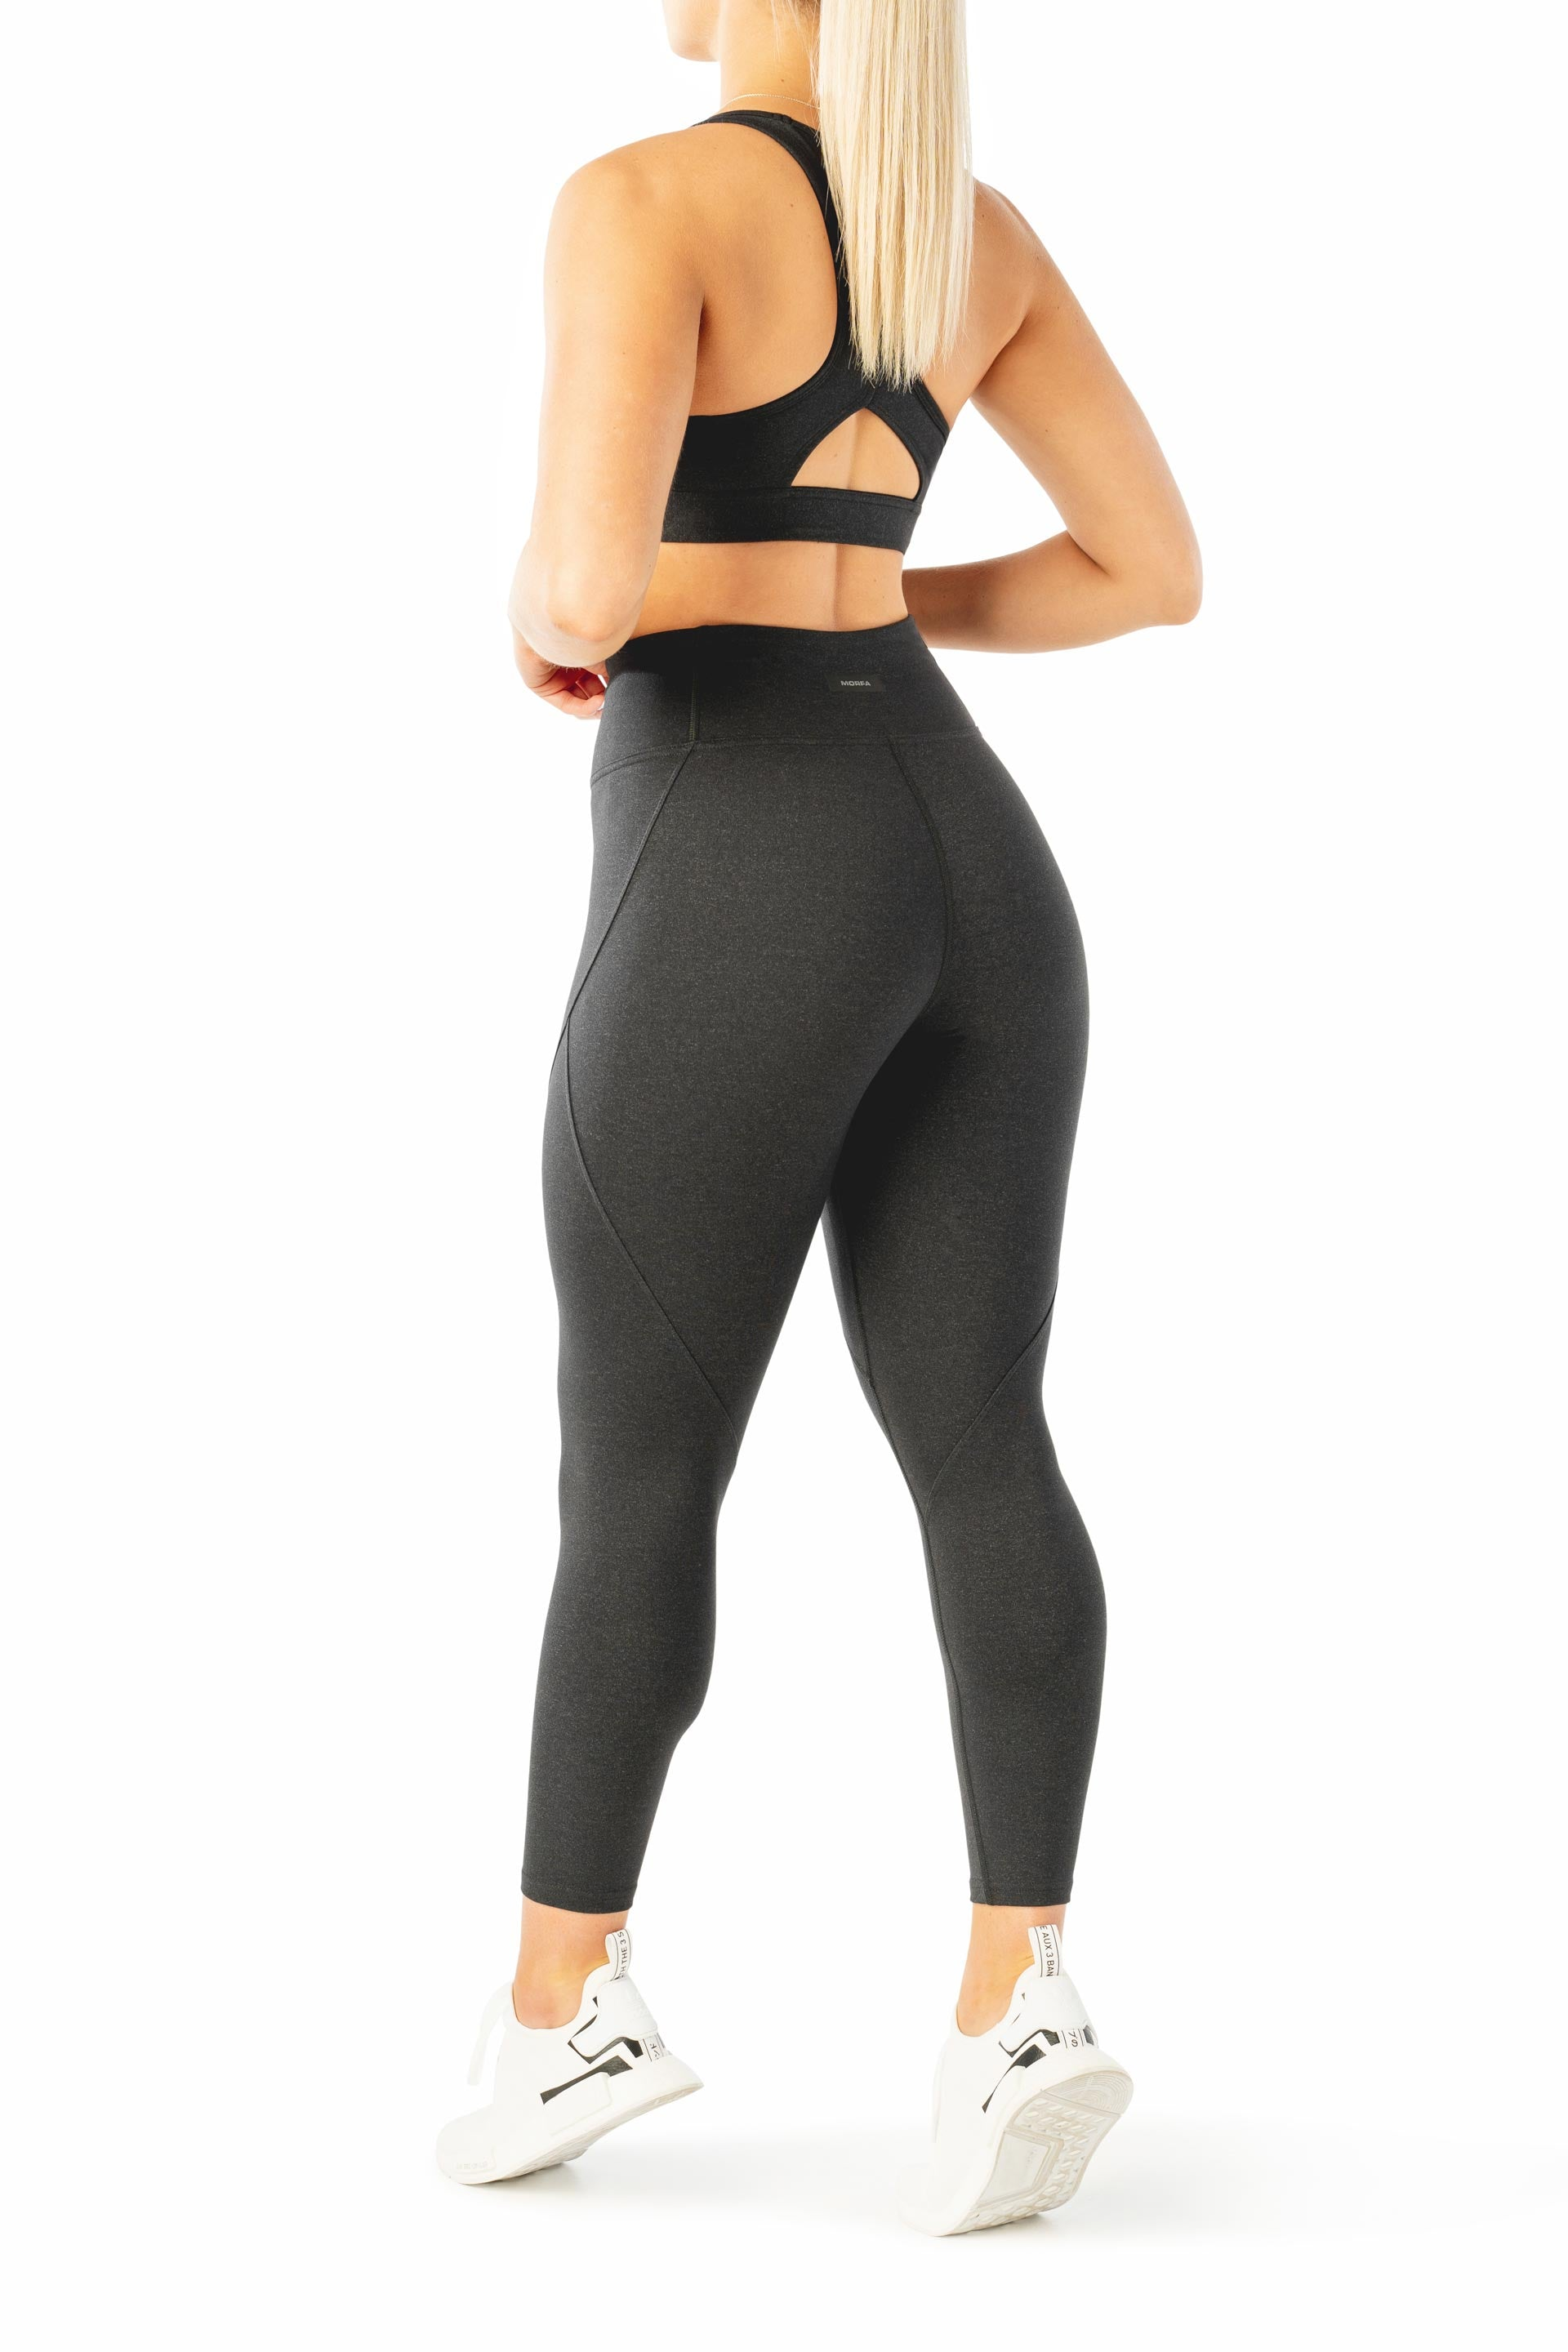 SCULPT 7/8 TIGHTS - BLACK MARL